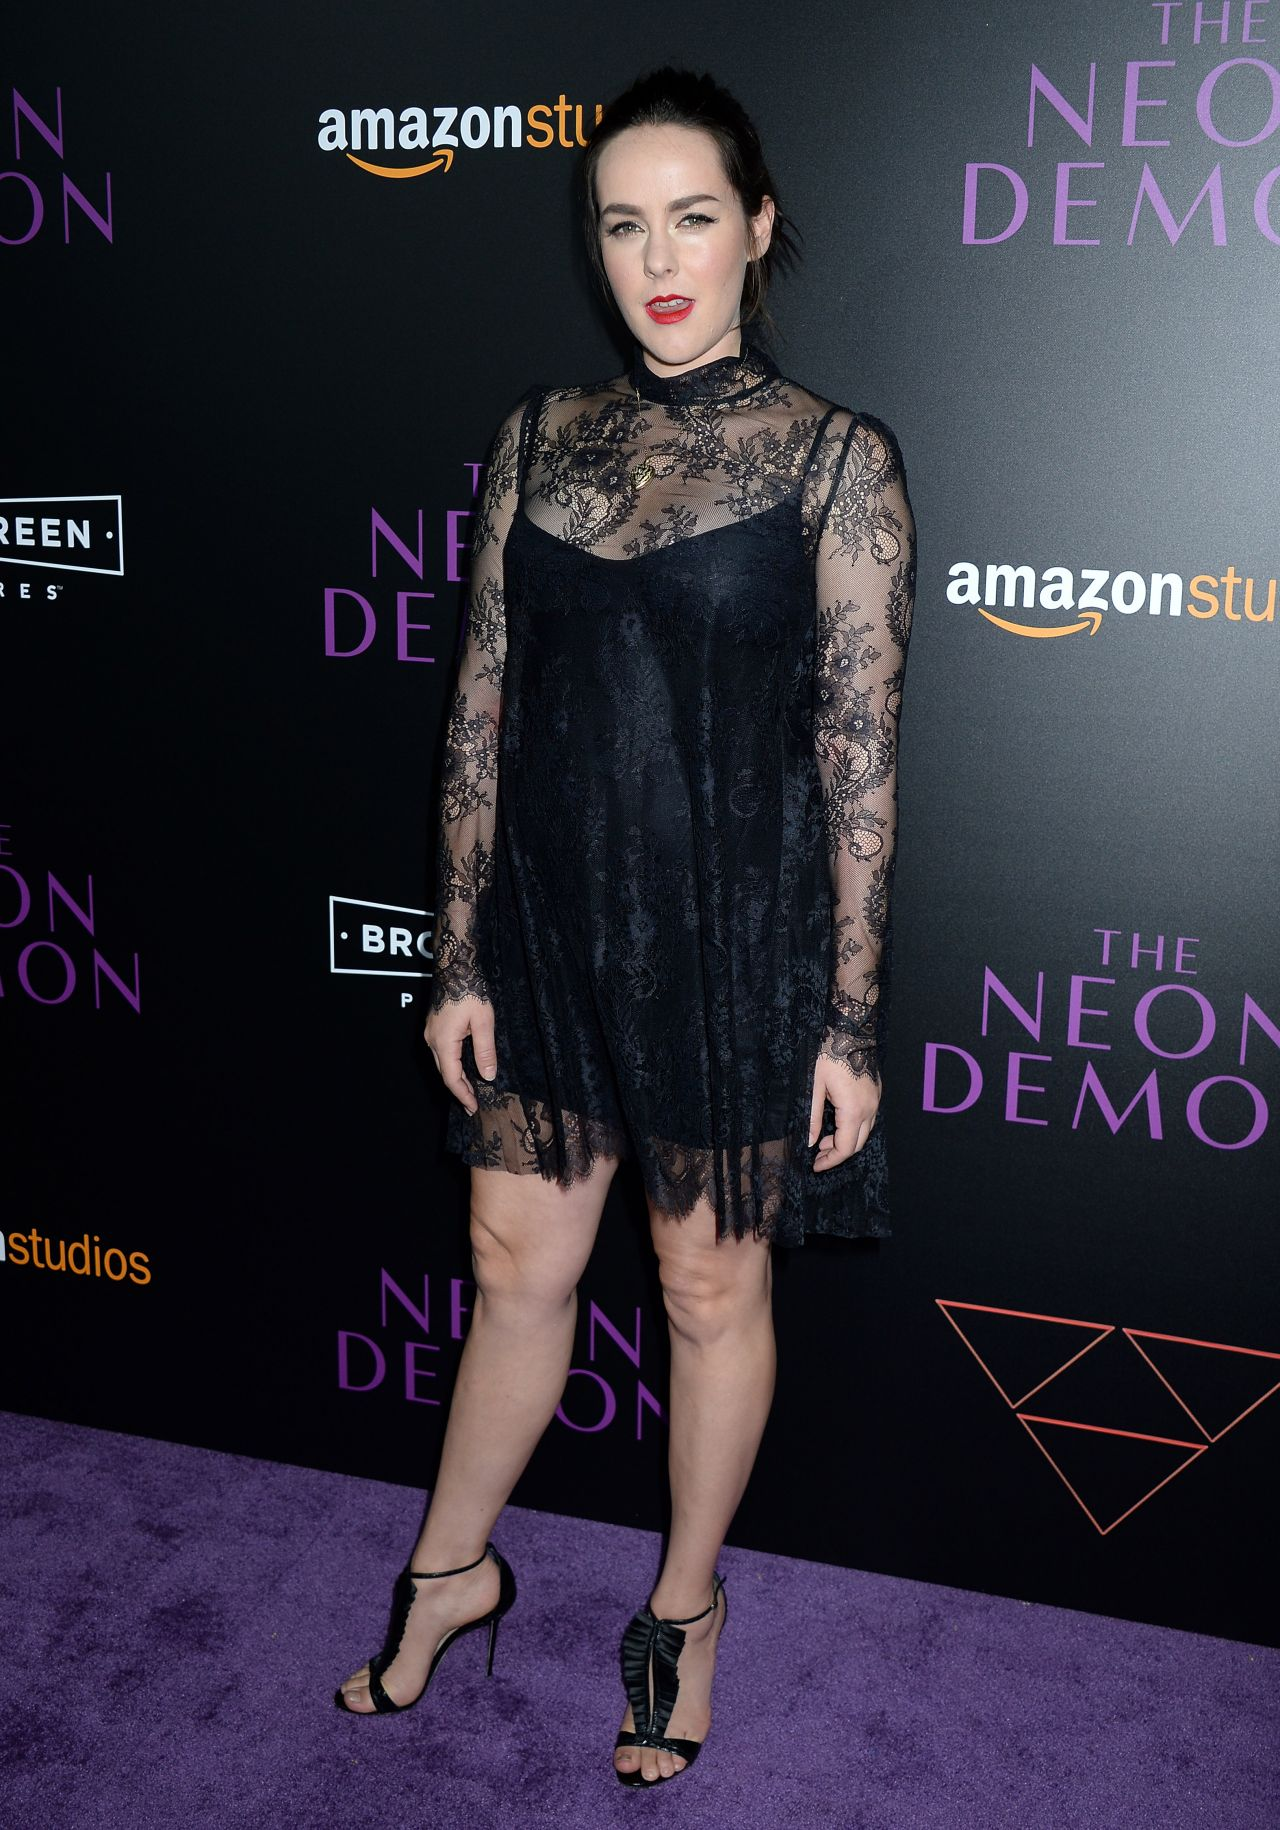 Feet Jena Malone nude (75 photos), Pussy, Cleavage, Feet, butt 2020